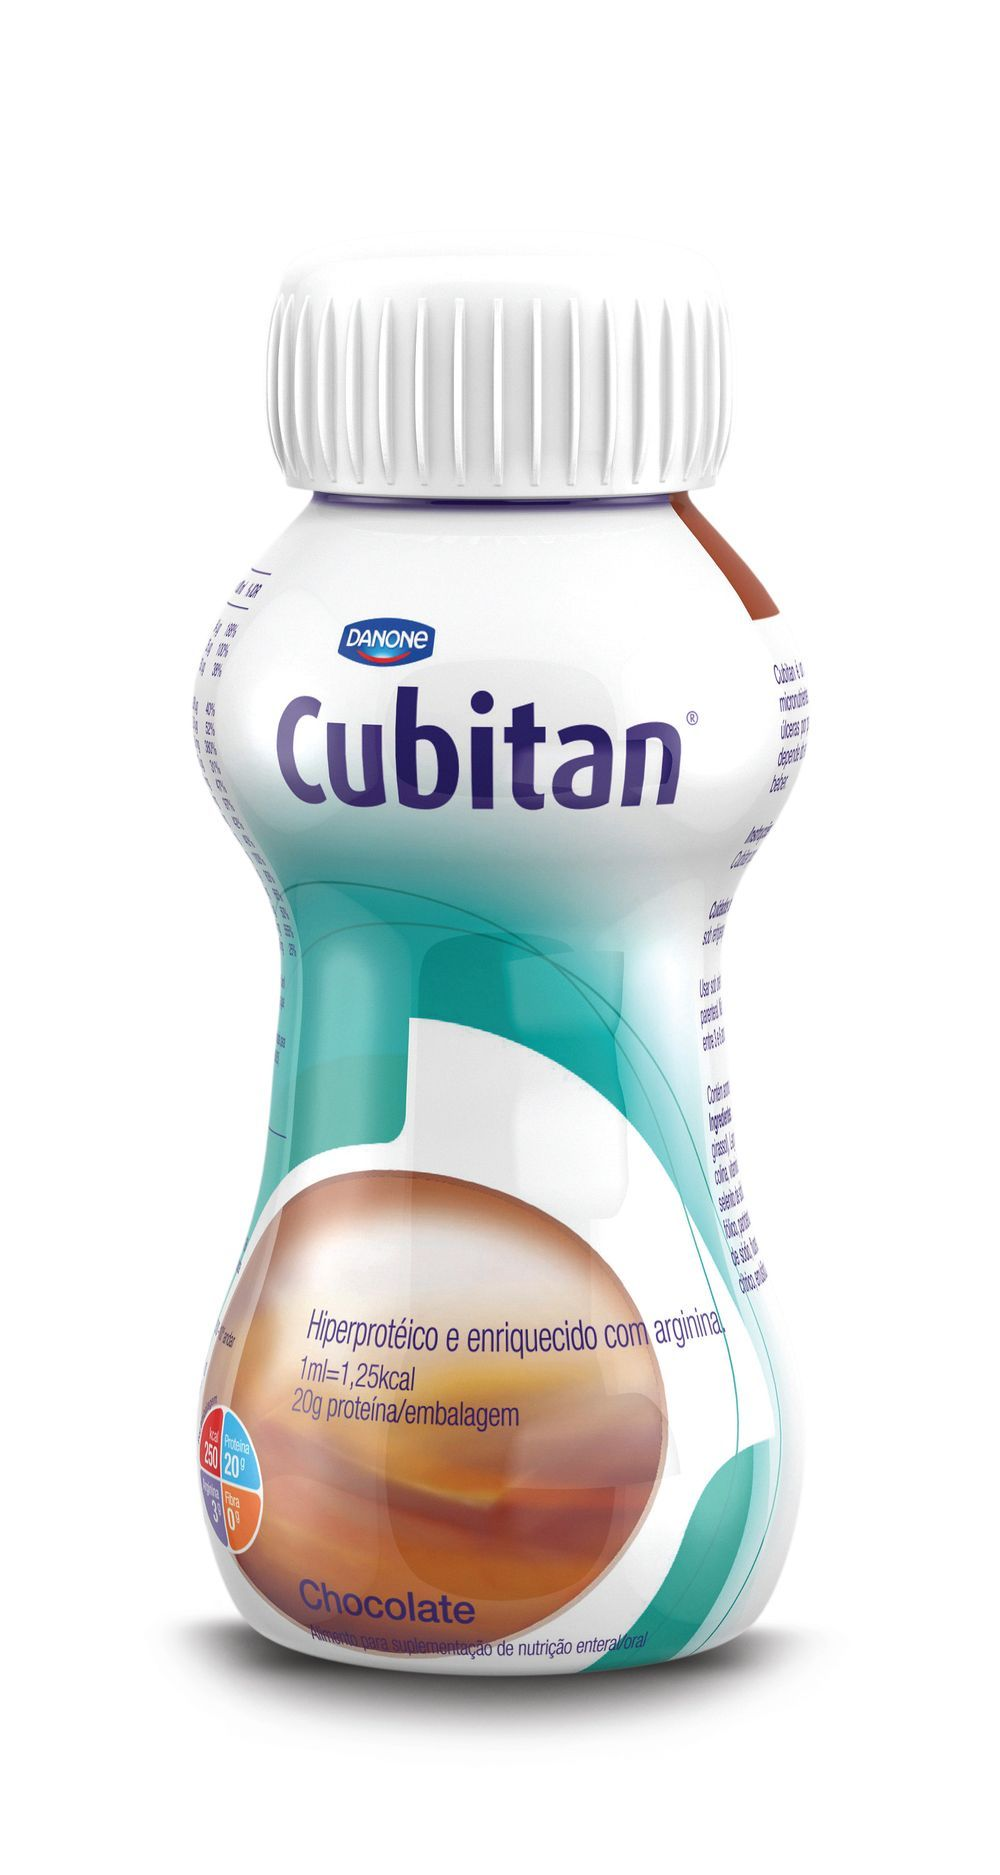 Cubitan Chocolate - 200 mL - (DANONE)